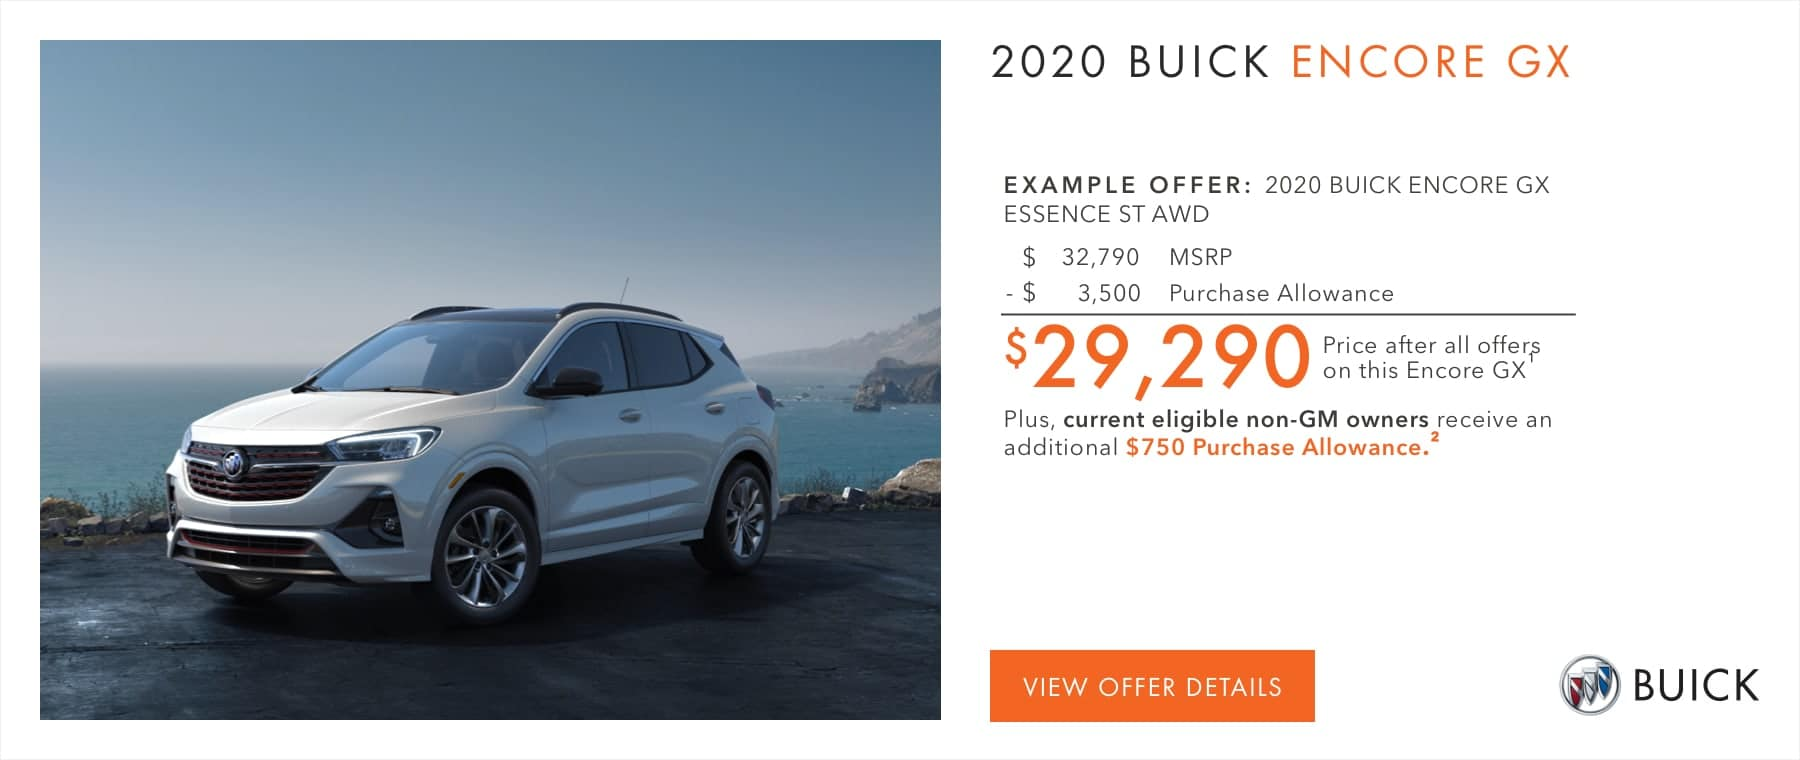 2020 Buick Encore GX offer